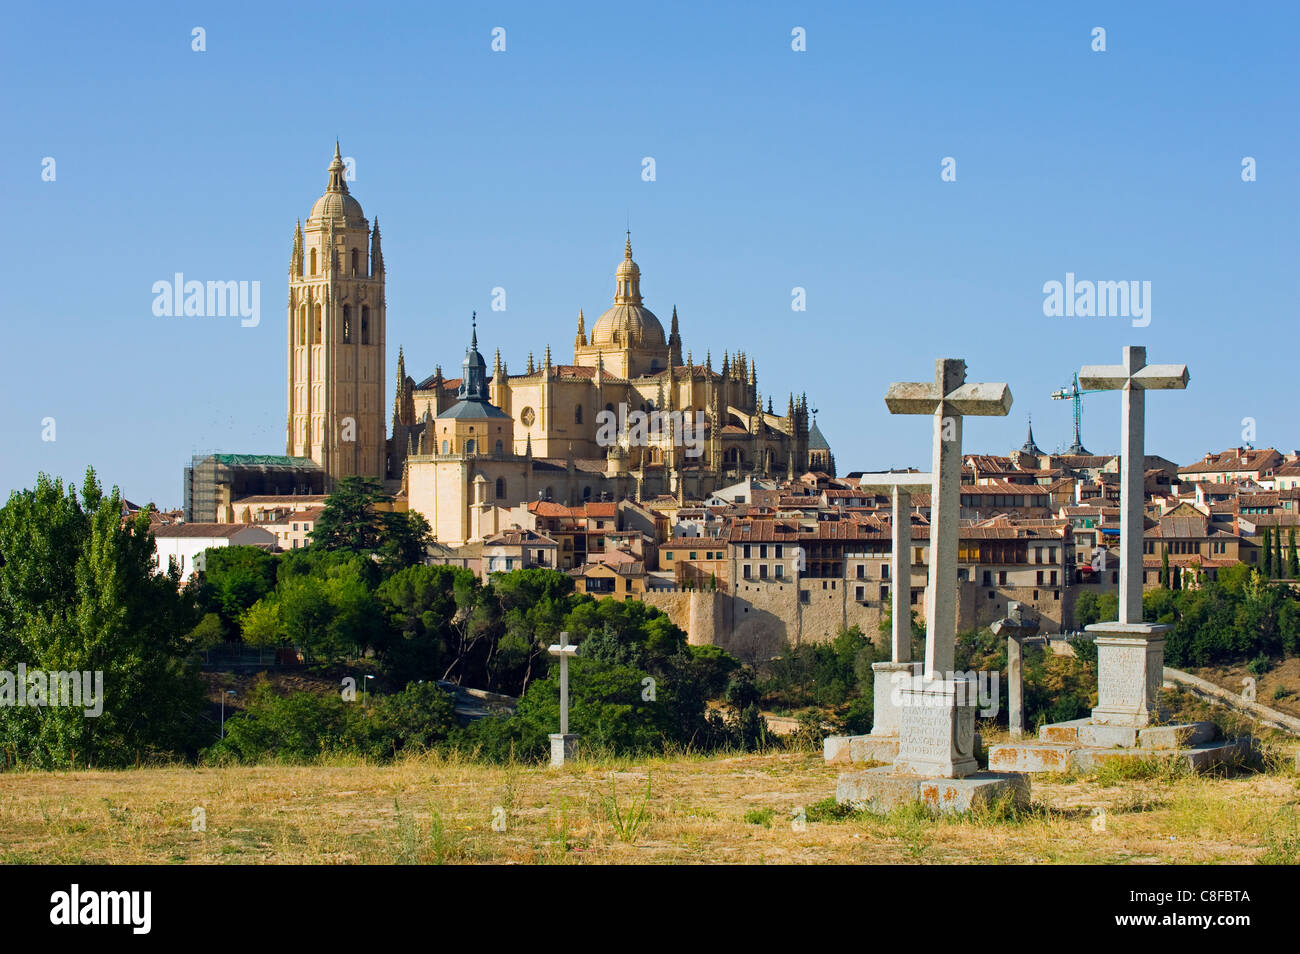 Cemetery crosses and Gothic style Segovia Cathedral dating from 1577, Segovia, Madrid, Spain - Stock Image